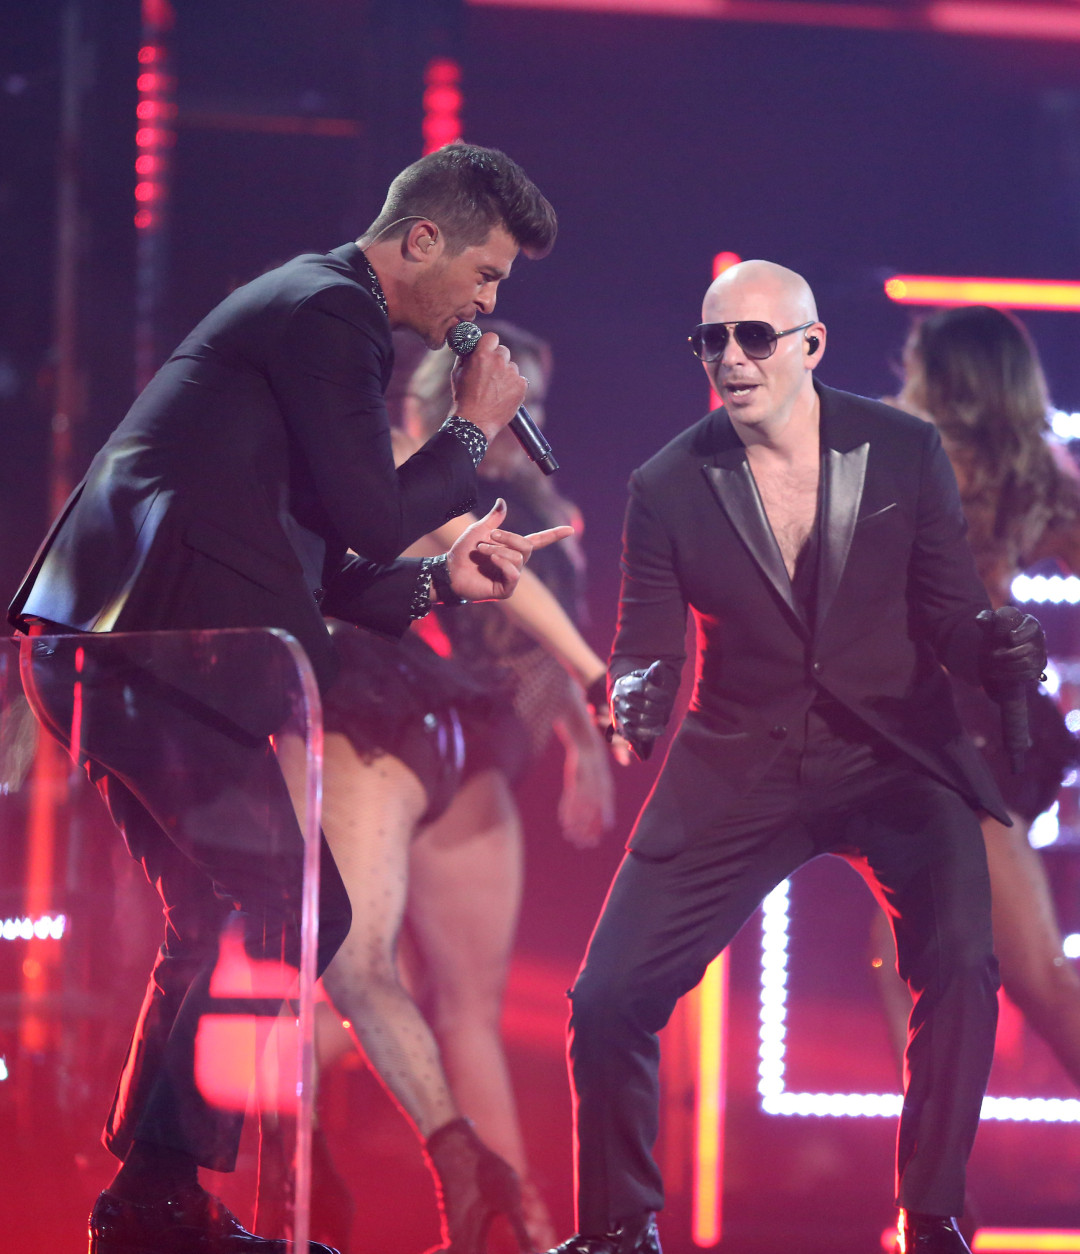 Robin Thicke, left, and Pitbull perform at the 58th annual Grammy Awards on Monday, Feb. 15, 2016, in Los Angeles. (Photo by Matt Sayles/Invision/AP)